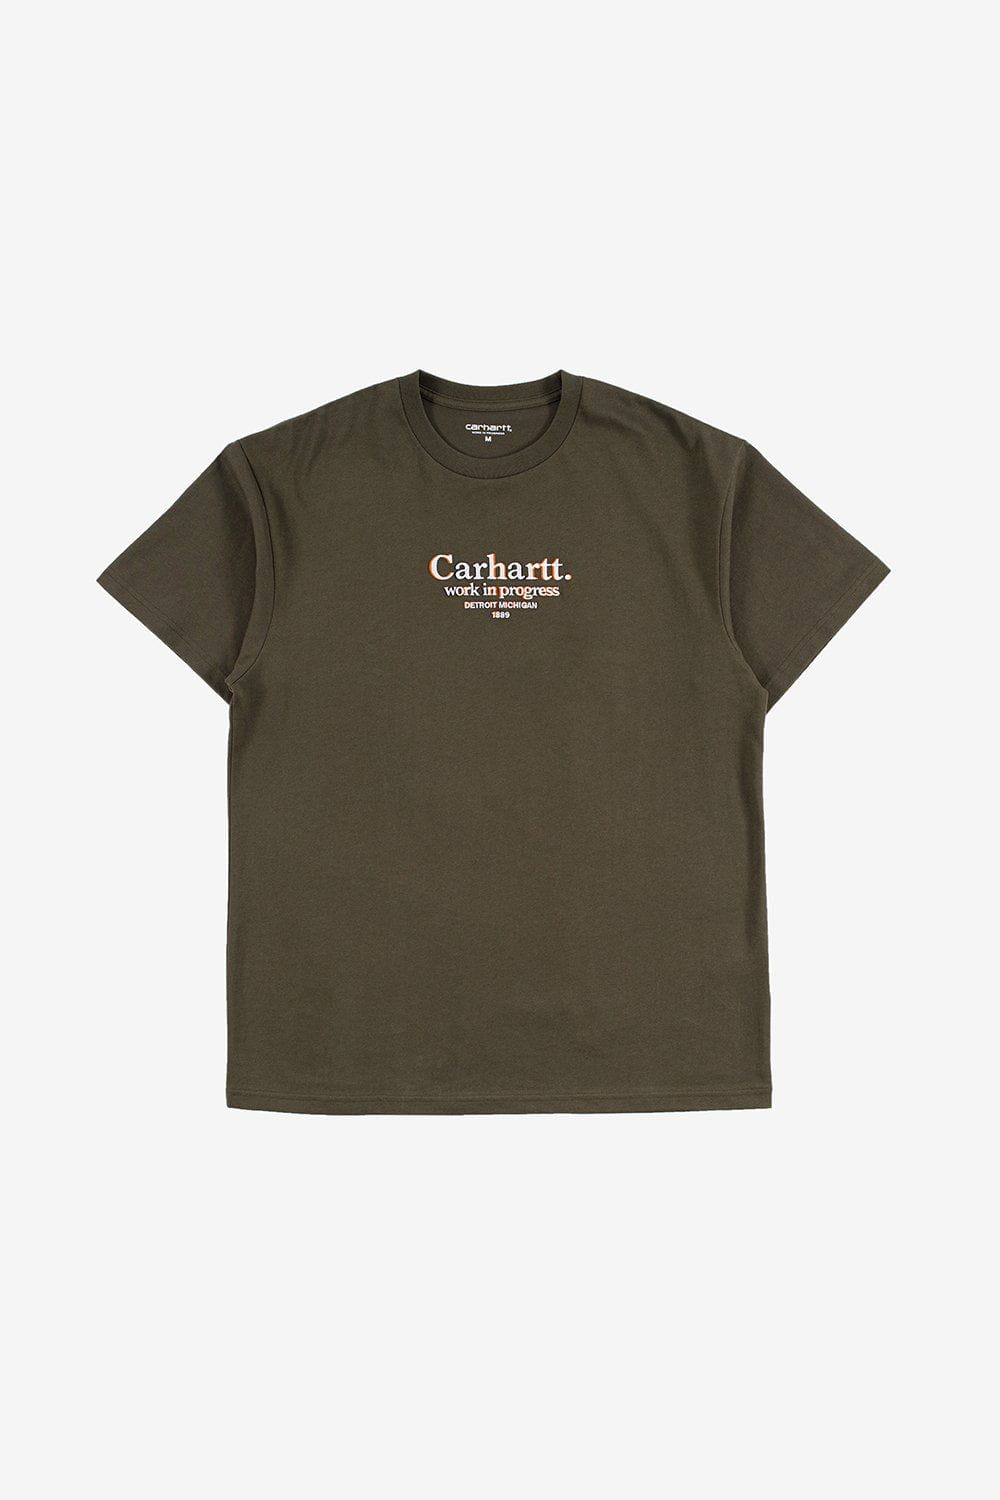 Carhartt WIP Apparel Commission T-shirt